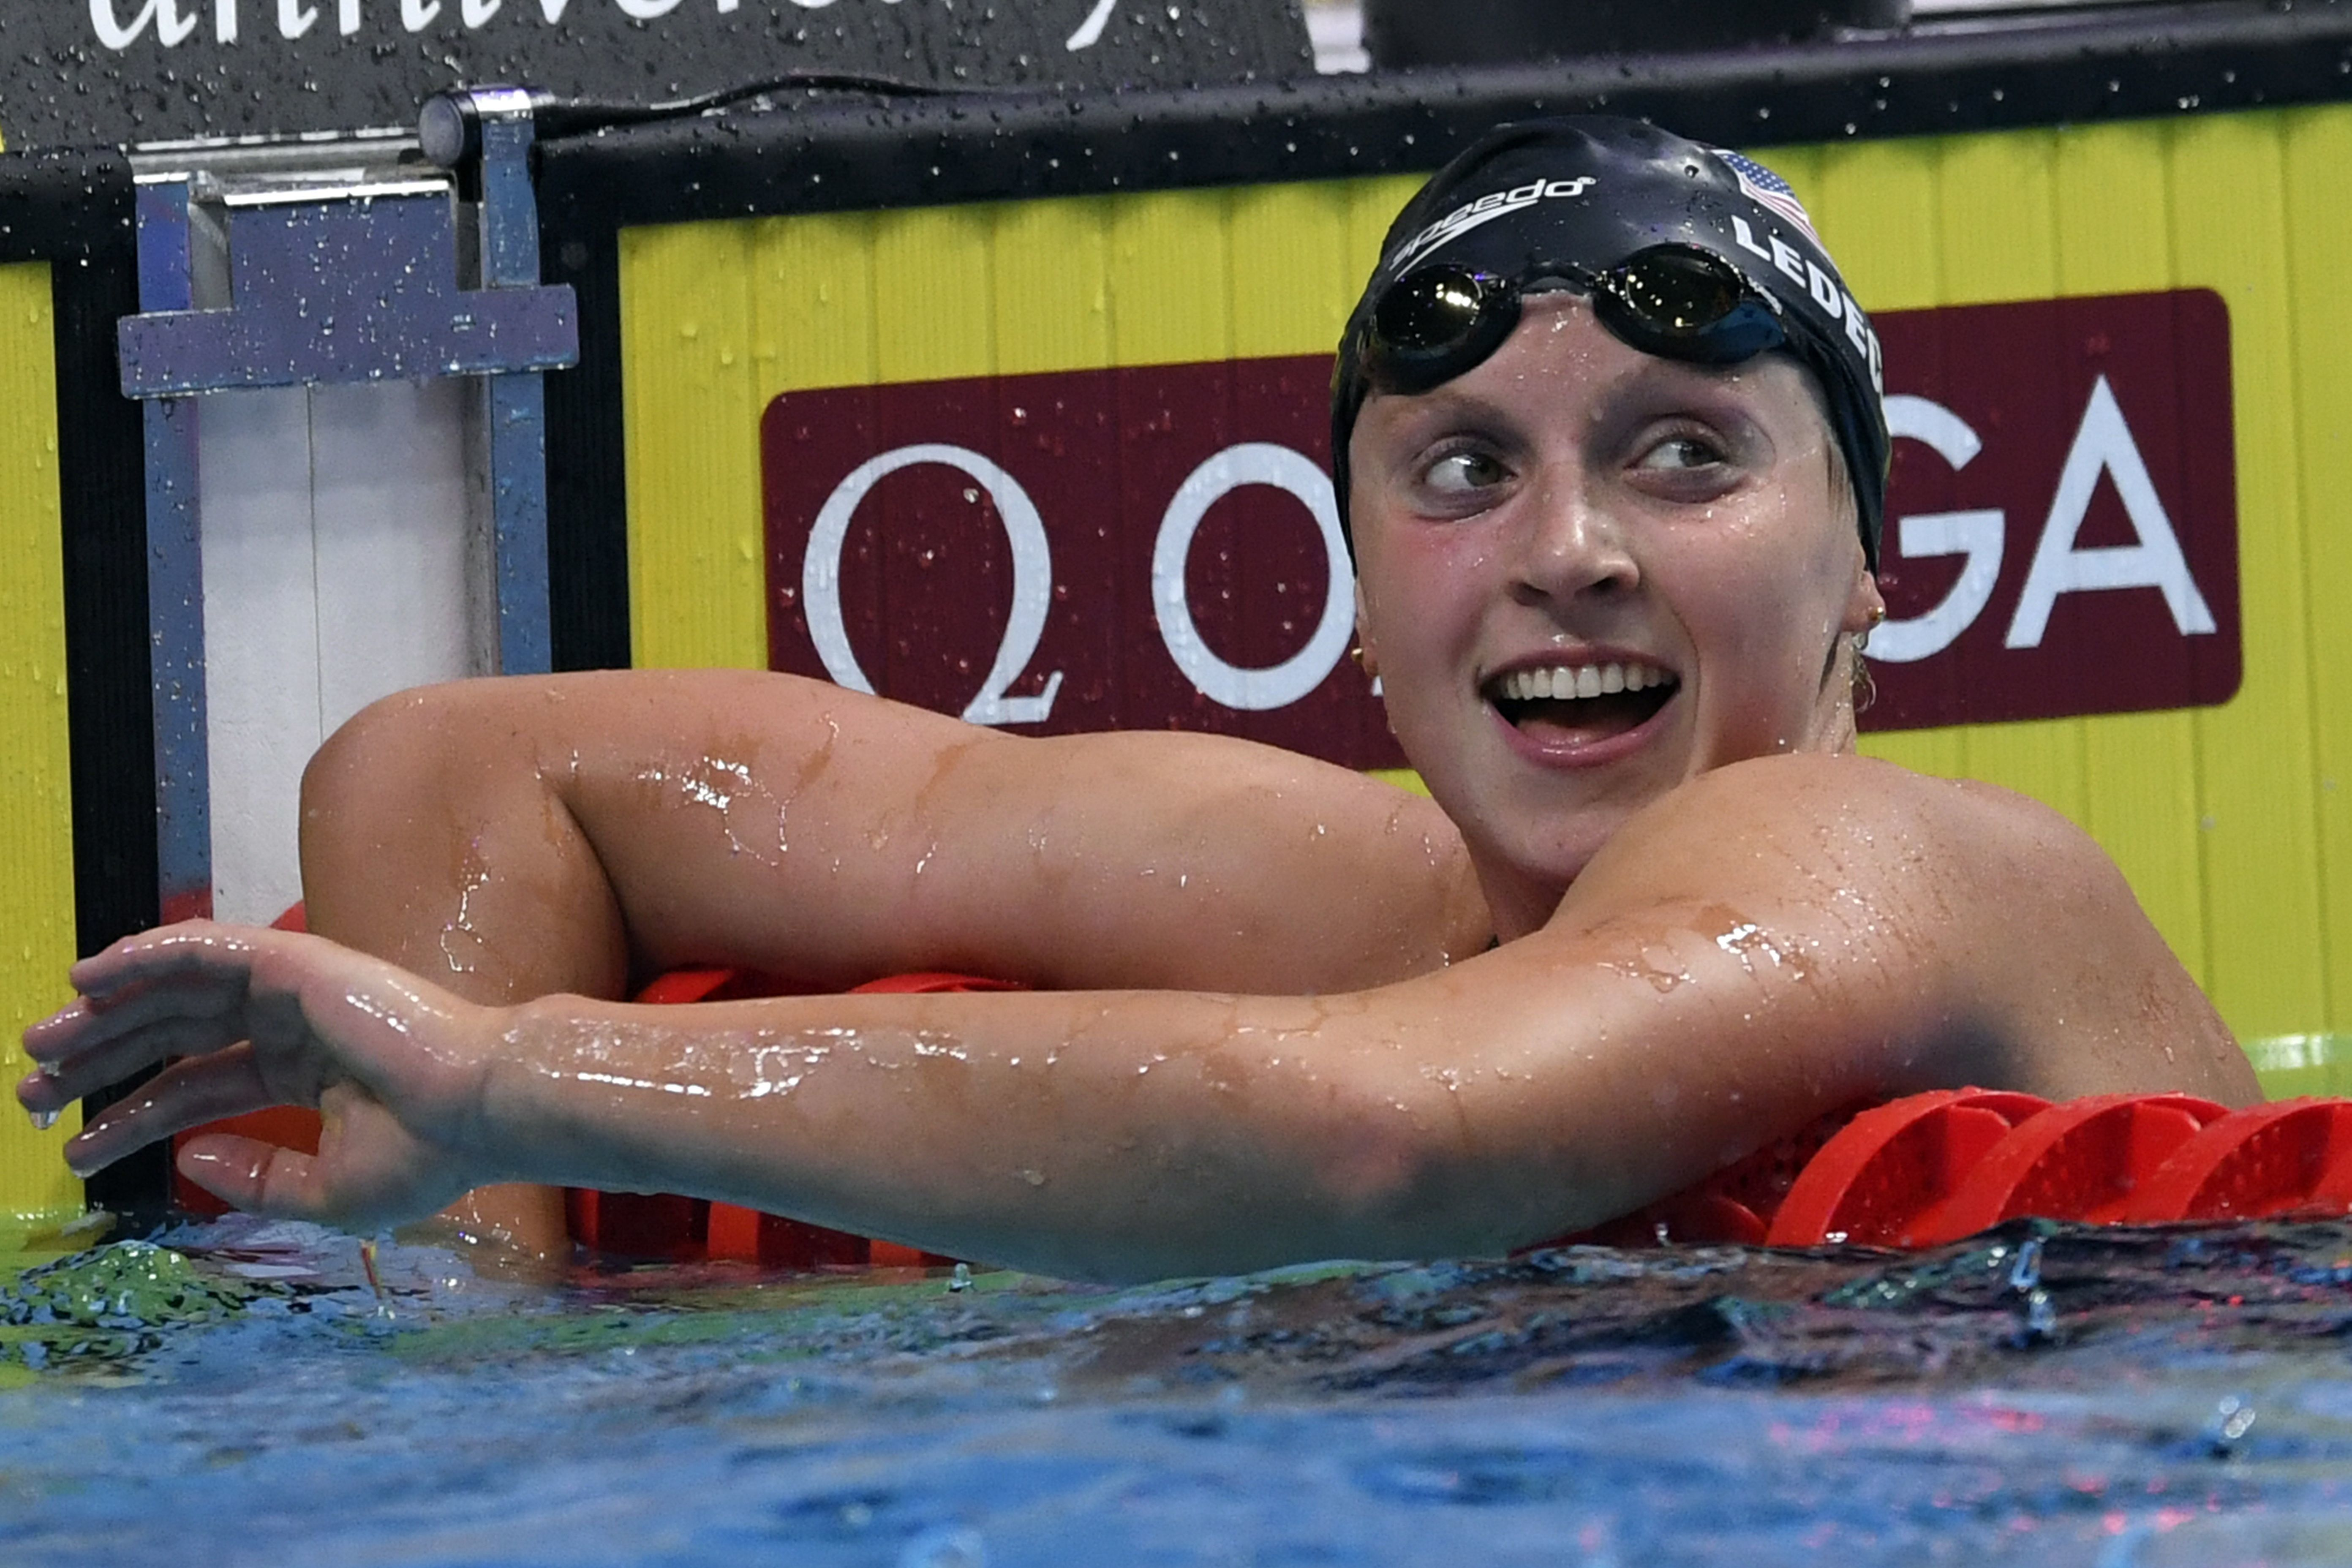 US Katie Ledecky reacts after competing in the women's 1500m freestyle final during the swimming competition at the 2017 FINA World Championships in Budapest, on July 25, 2017.  / AFP PHOTO / CHRISTOPHE SIMON        (Photo credit should read CHRISTOPHE SIMON/AFP/Getty Images)